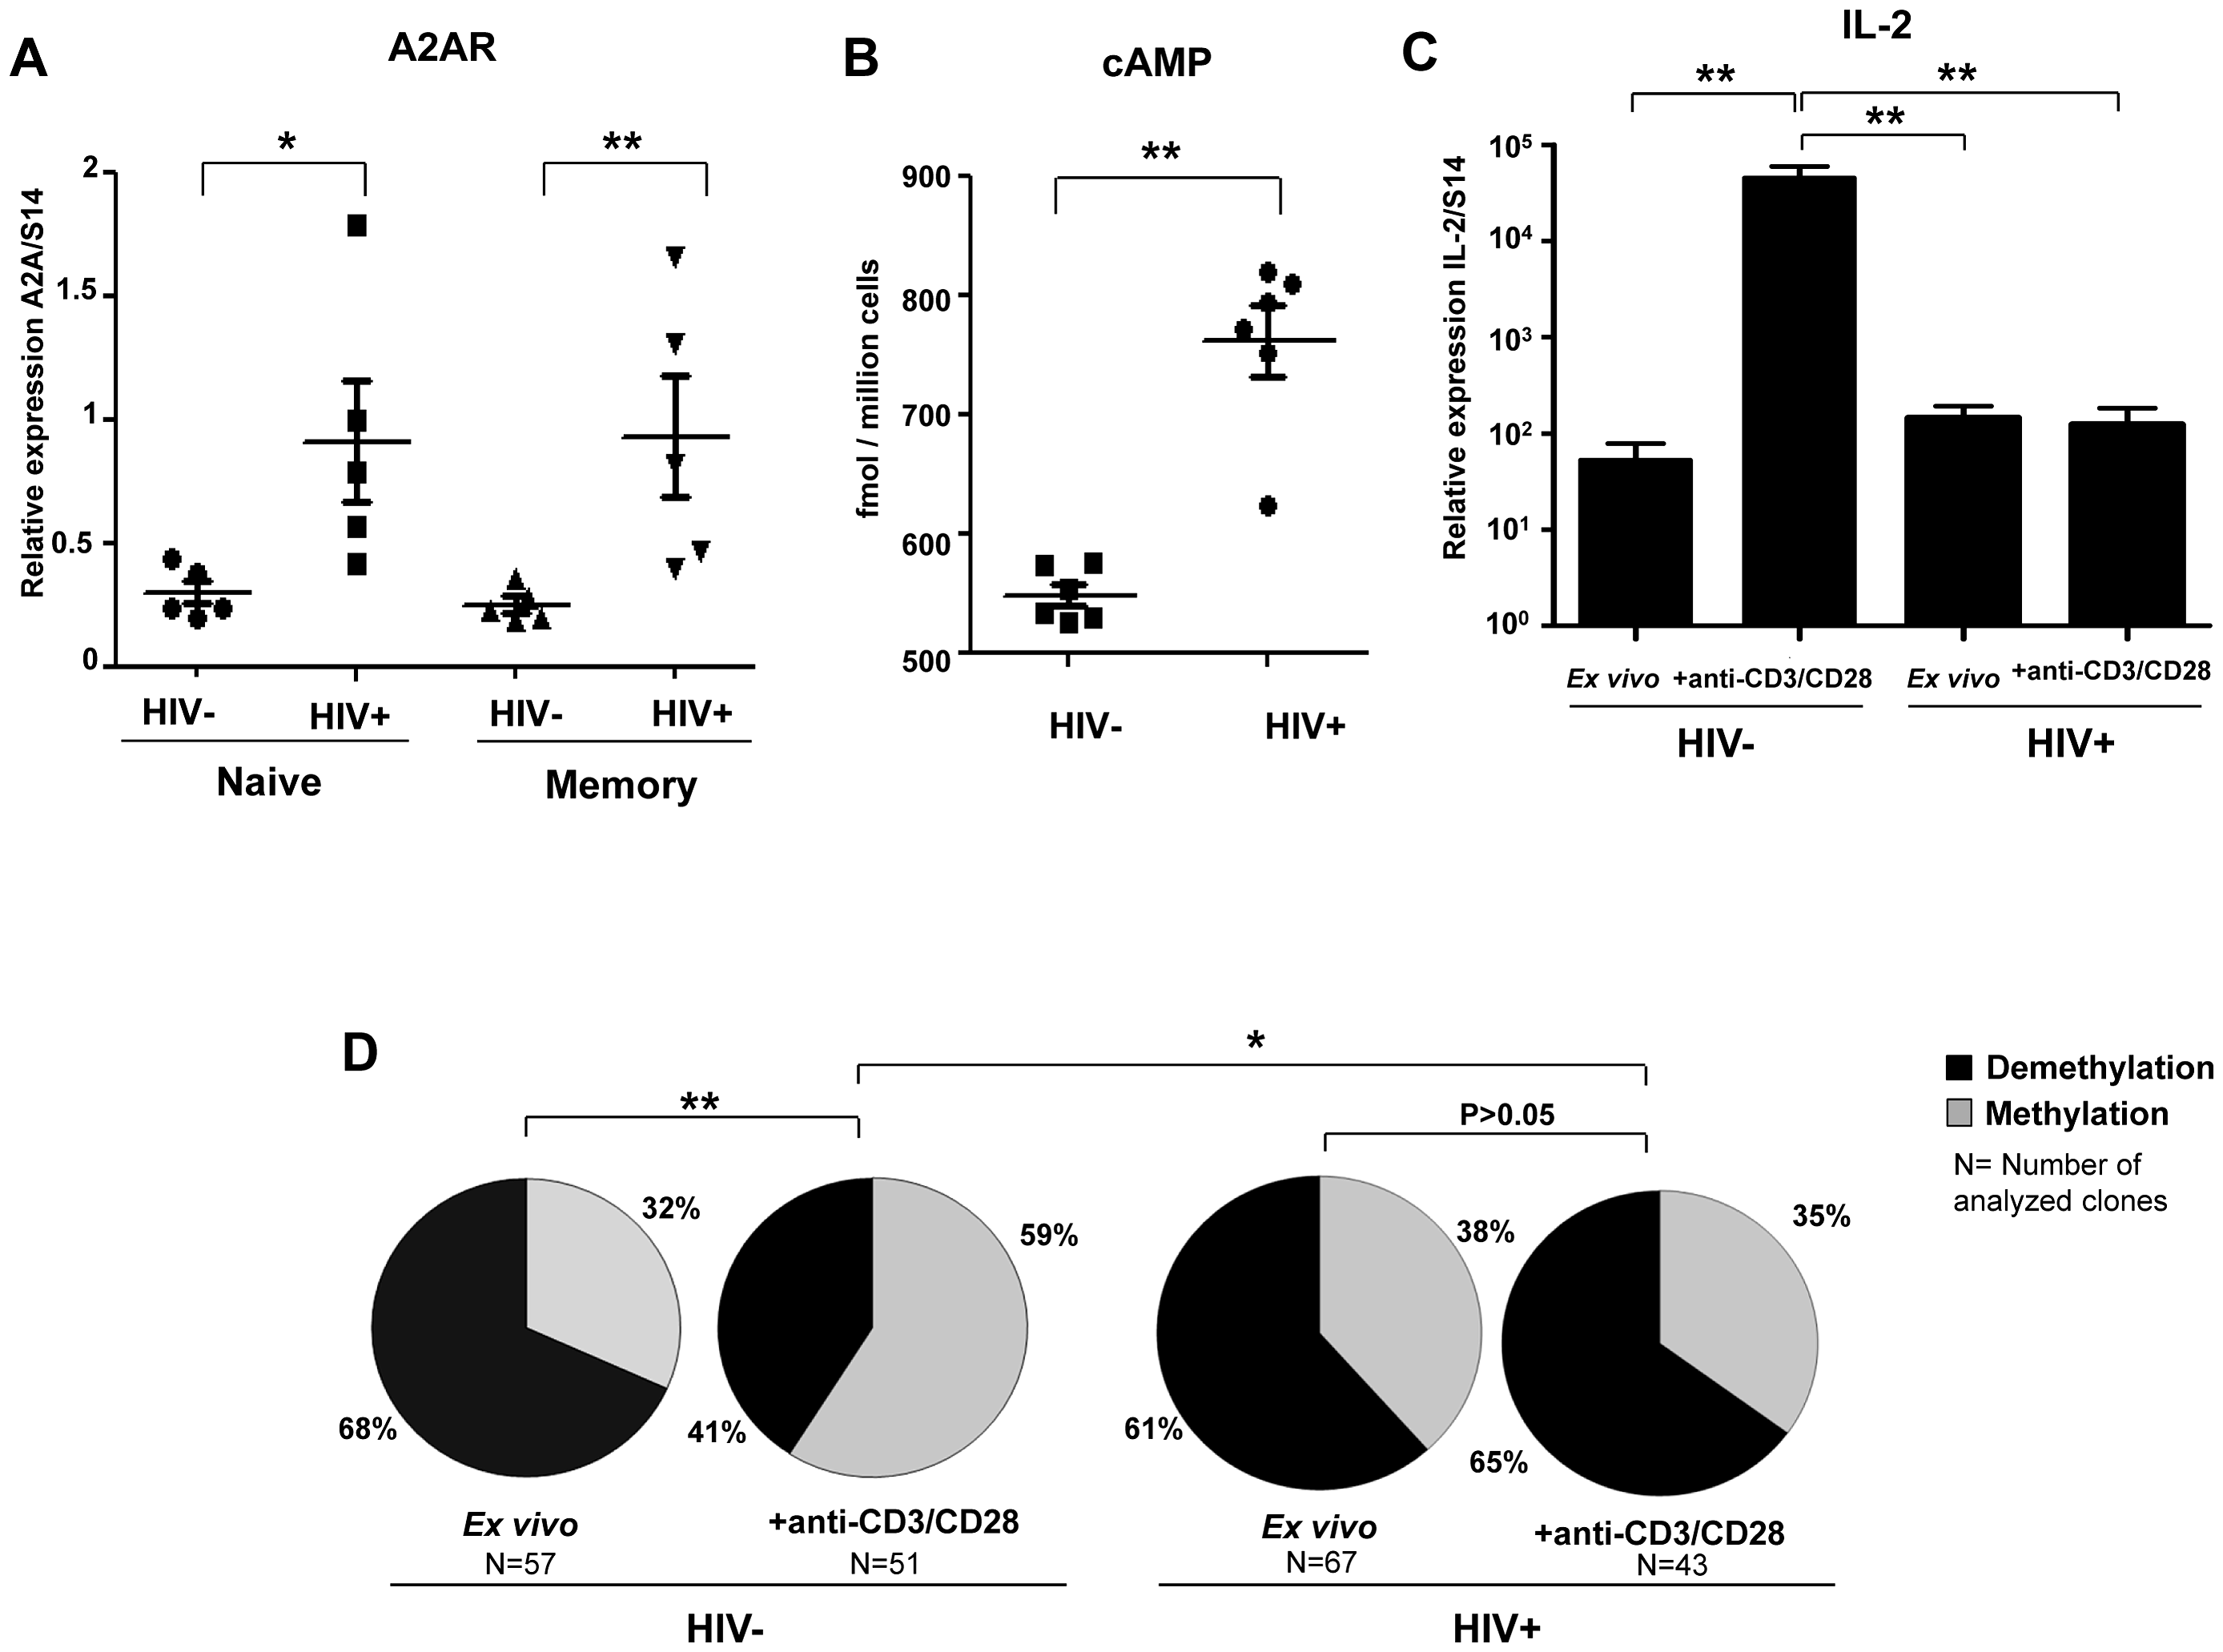 High levels of A2AR and endogenous cAMP in CD4+ T cells from HIV infected patients and lack of IL-2 production